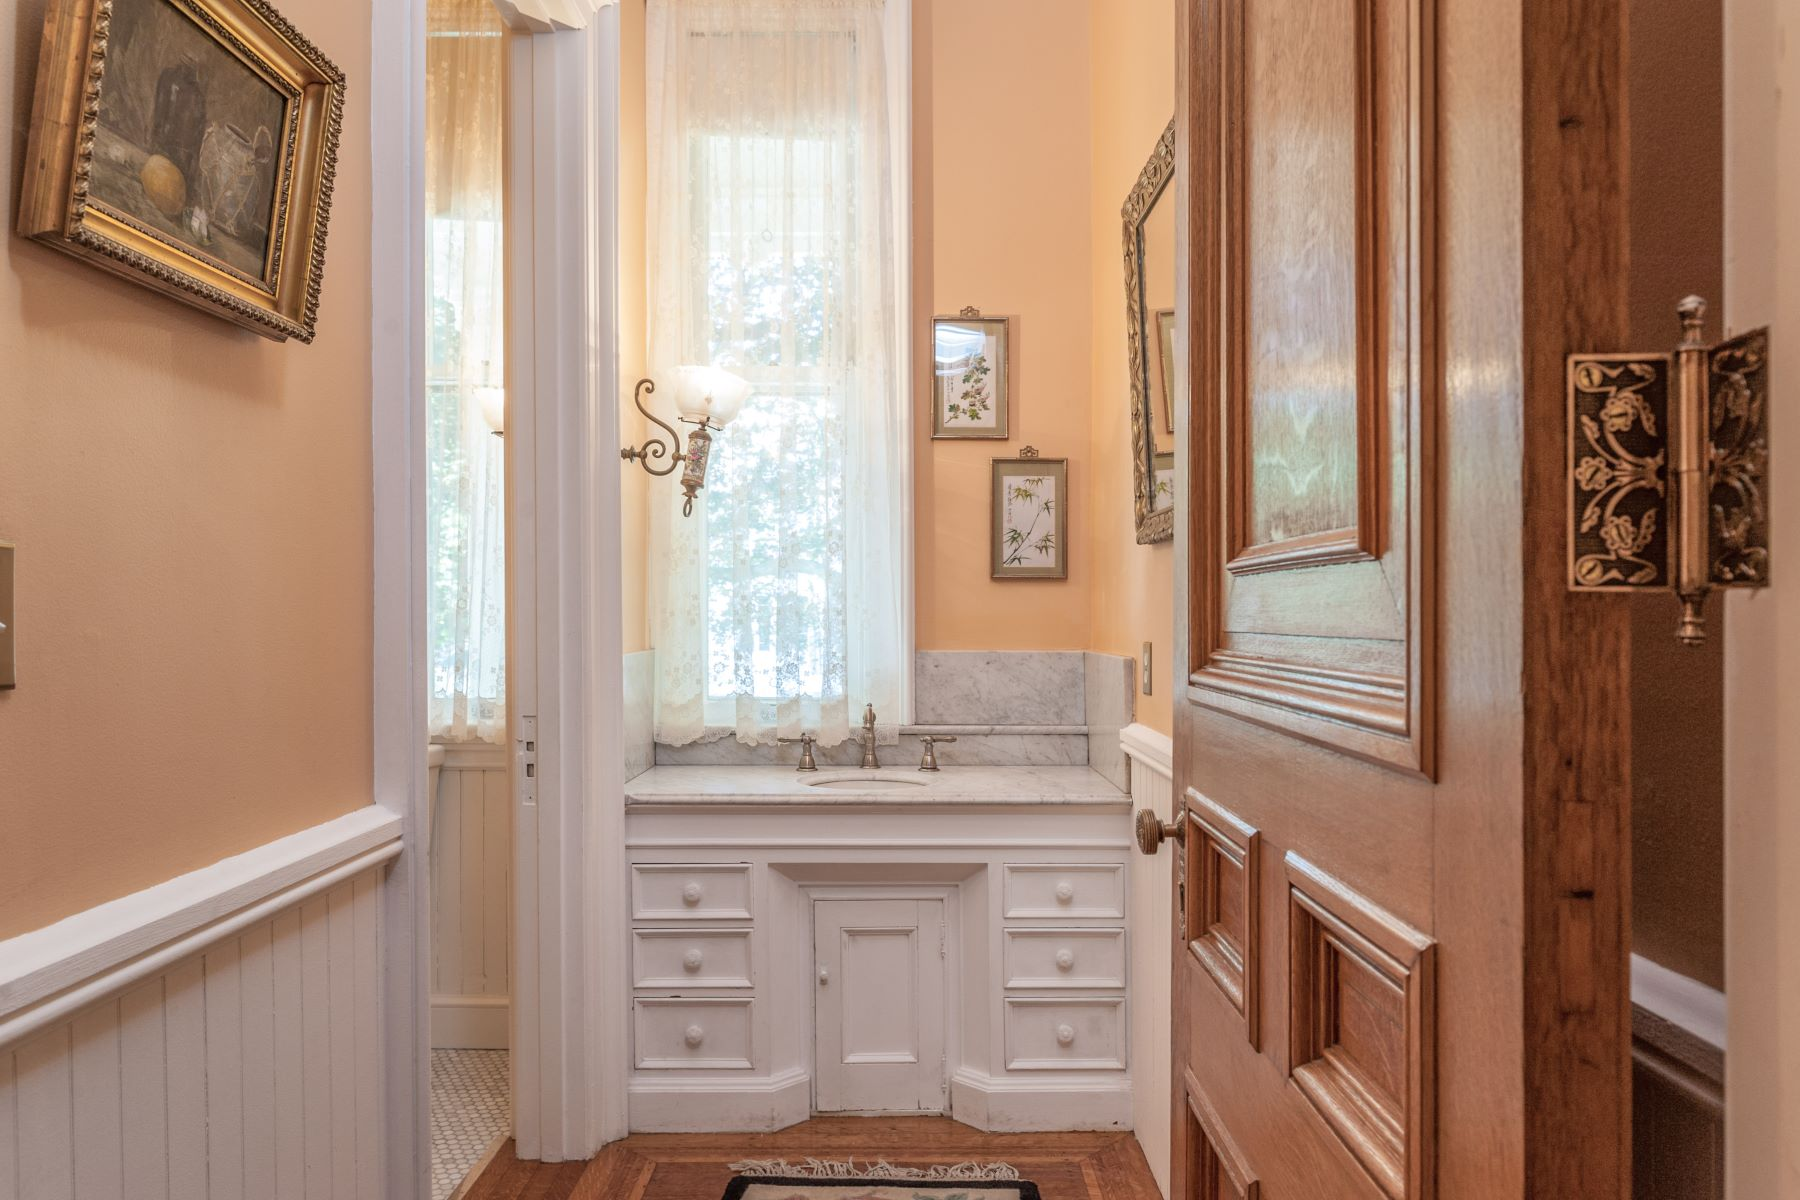 Additional photo for property listing at 103 Prospect St, East Side Of Prov, RI  Providence, Rhode Island 02906 Estados Unidos